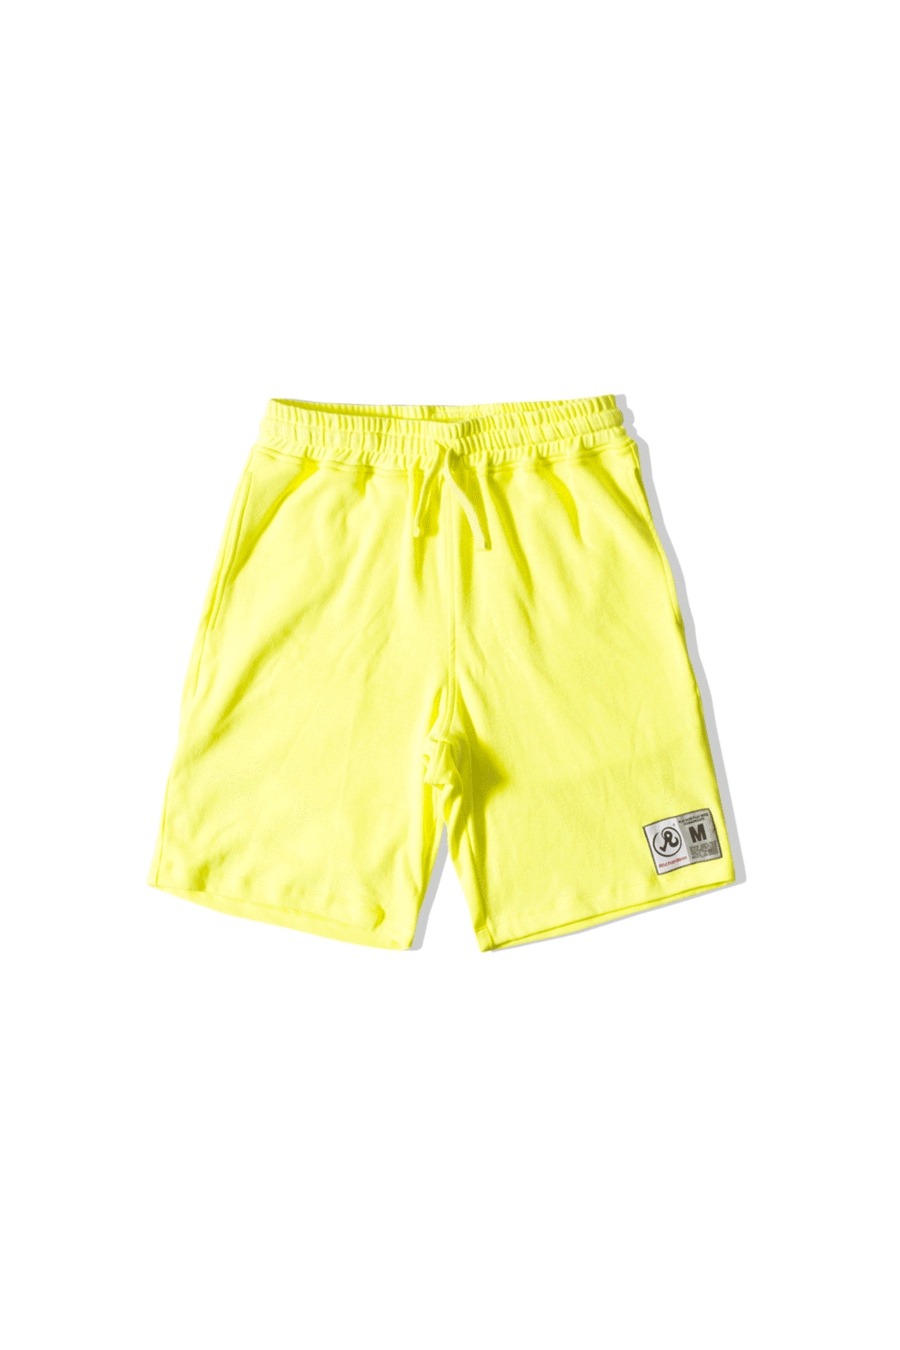 Richardson Mag Shorts Simple Sweatshorts Yellow SS19026PIG#000#YELLOW#S - One Block Down